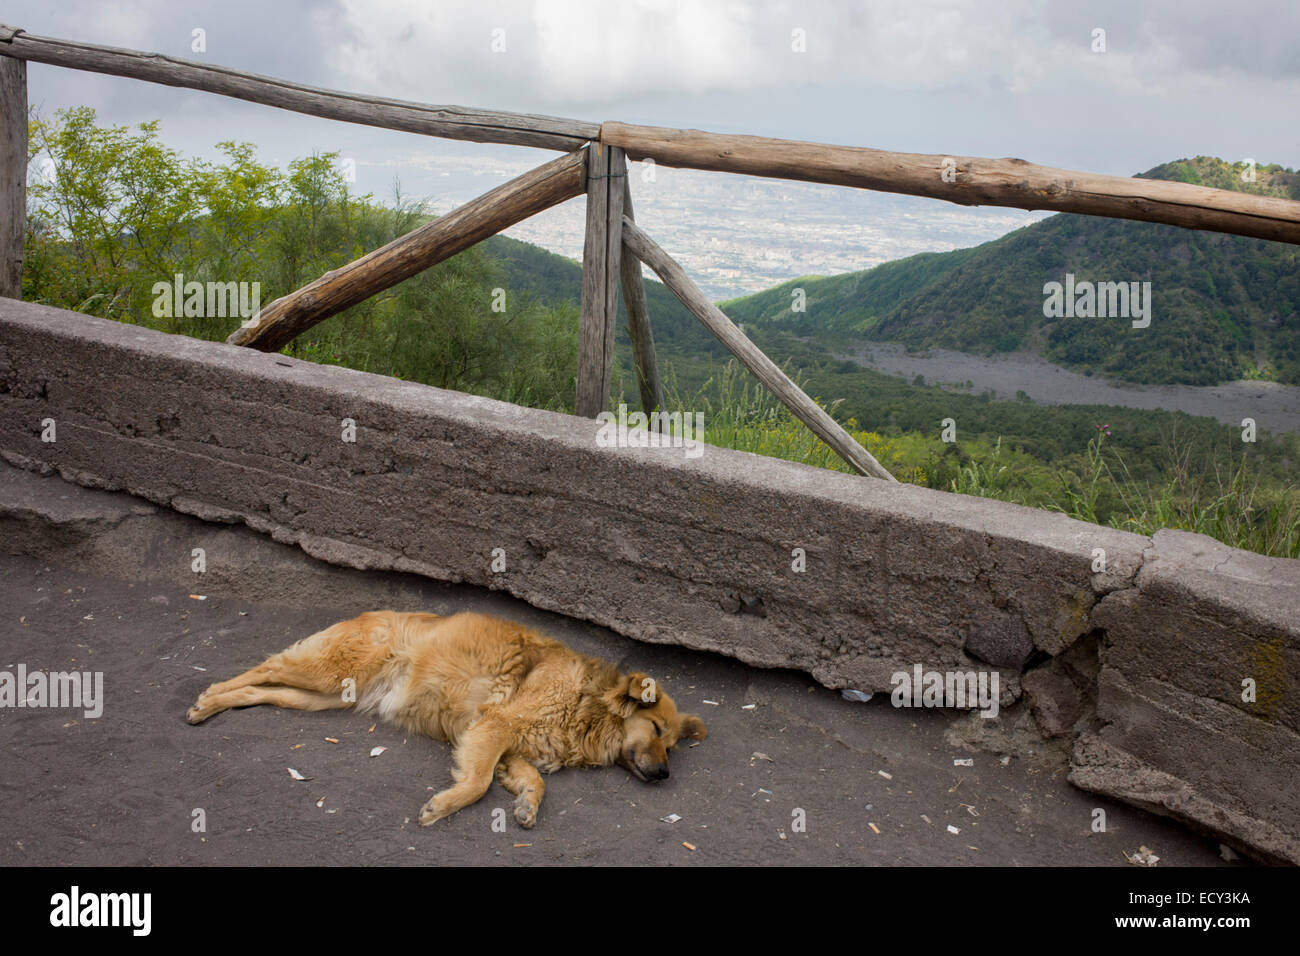 Sleeping dog on lava dust ground on the slopes of Vesuvius. - Stock Image